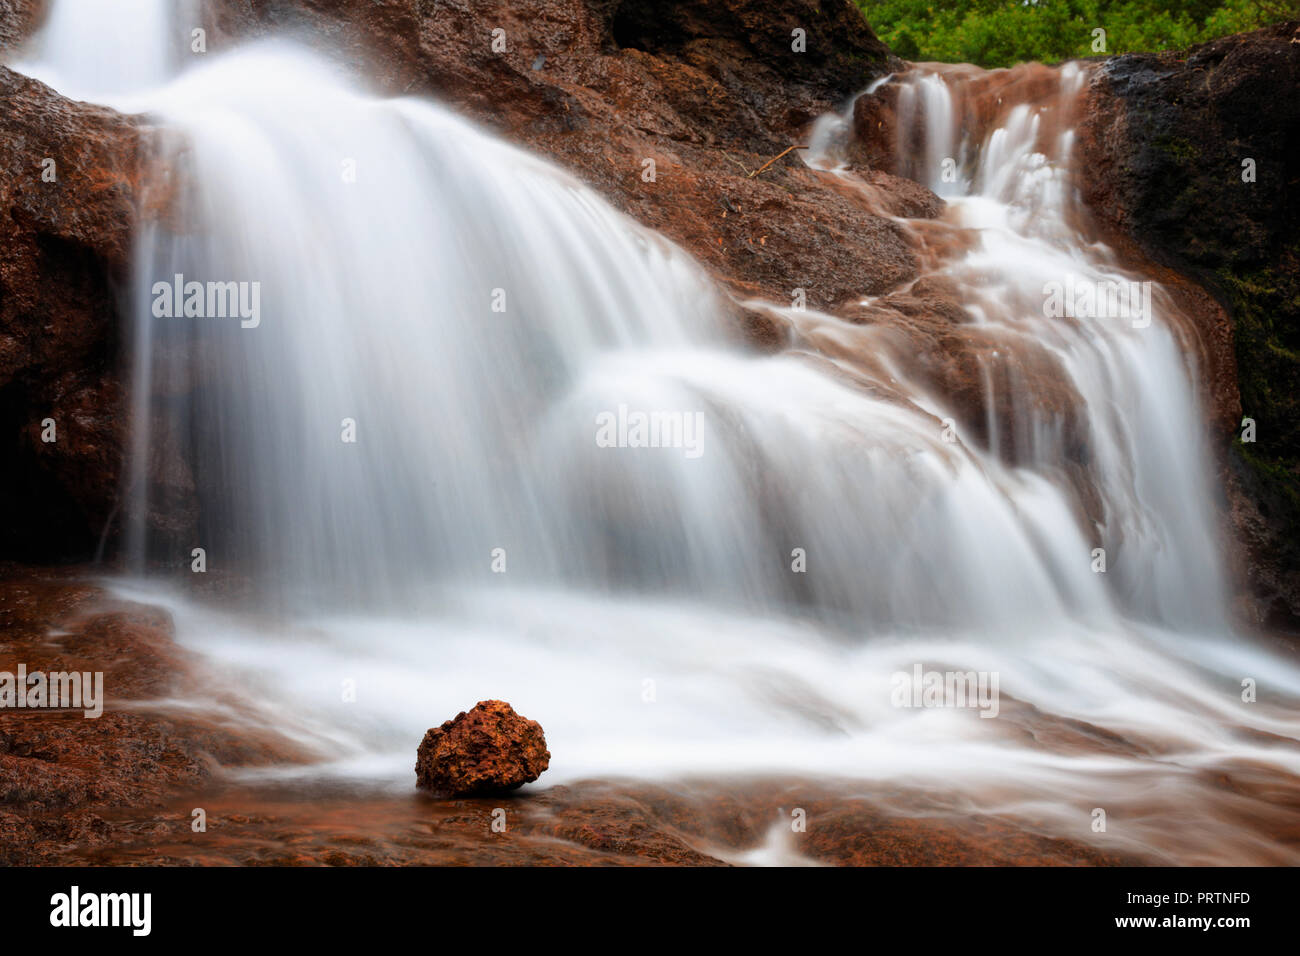 Ironstone Gully Falls - Stock Image